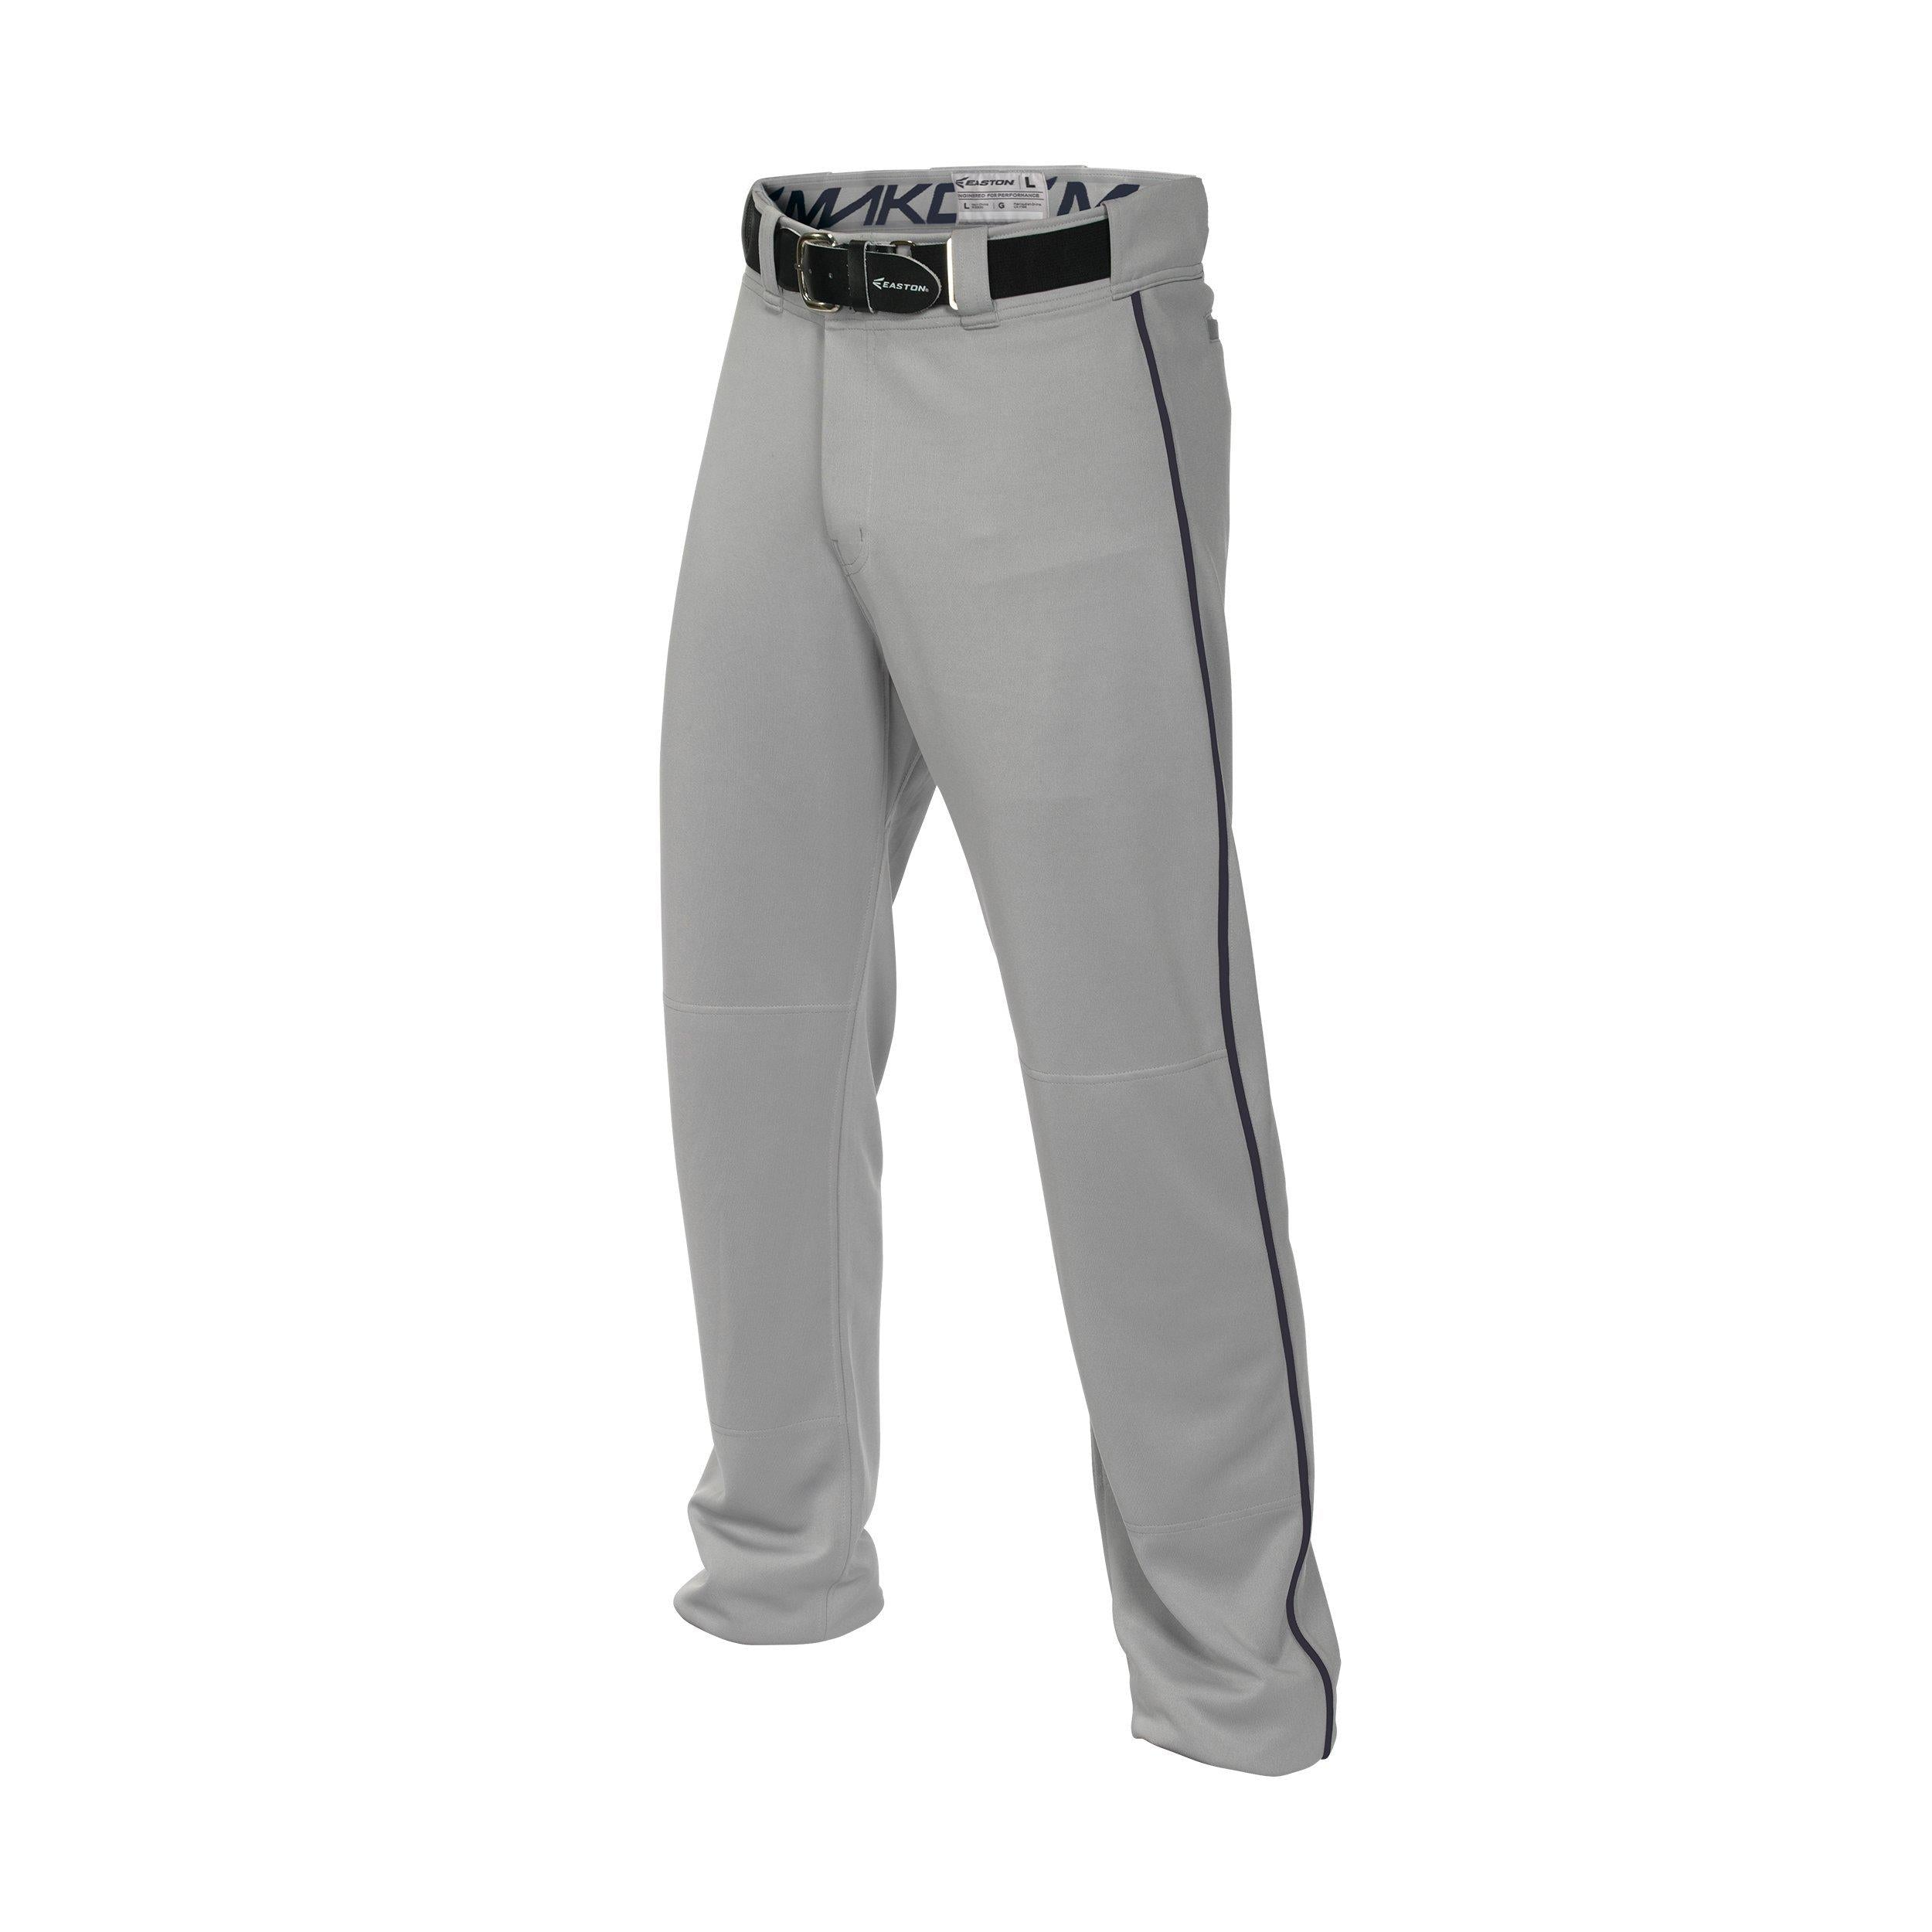 Easton Mako 2 Piped Baseball Pants